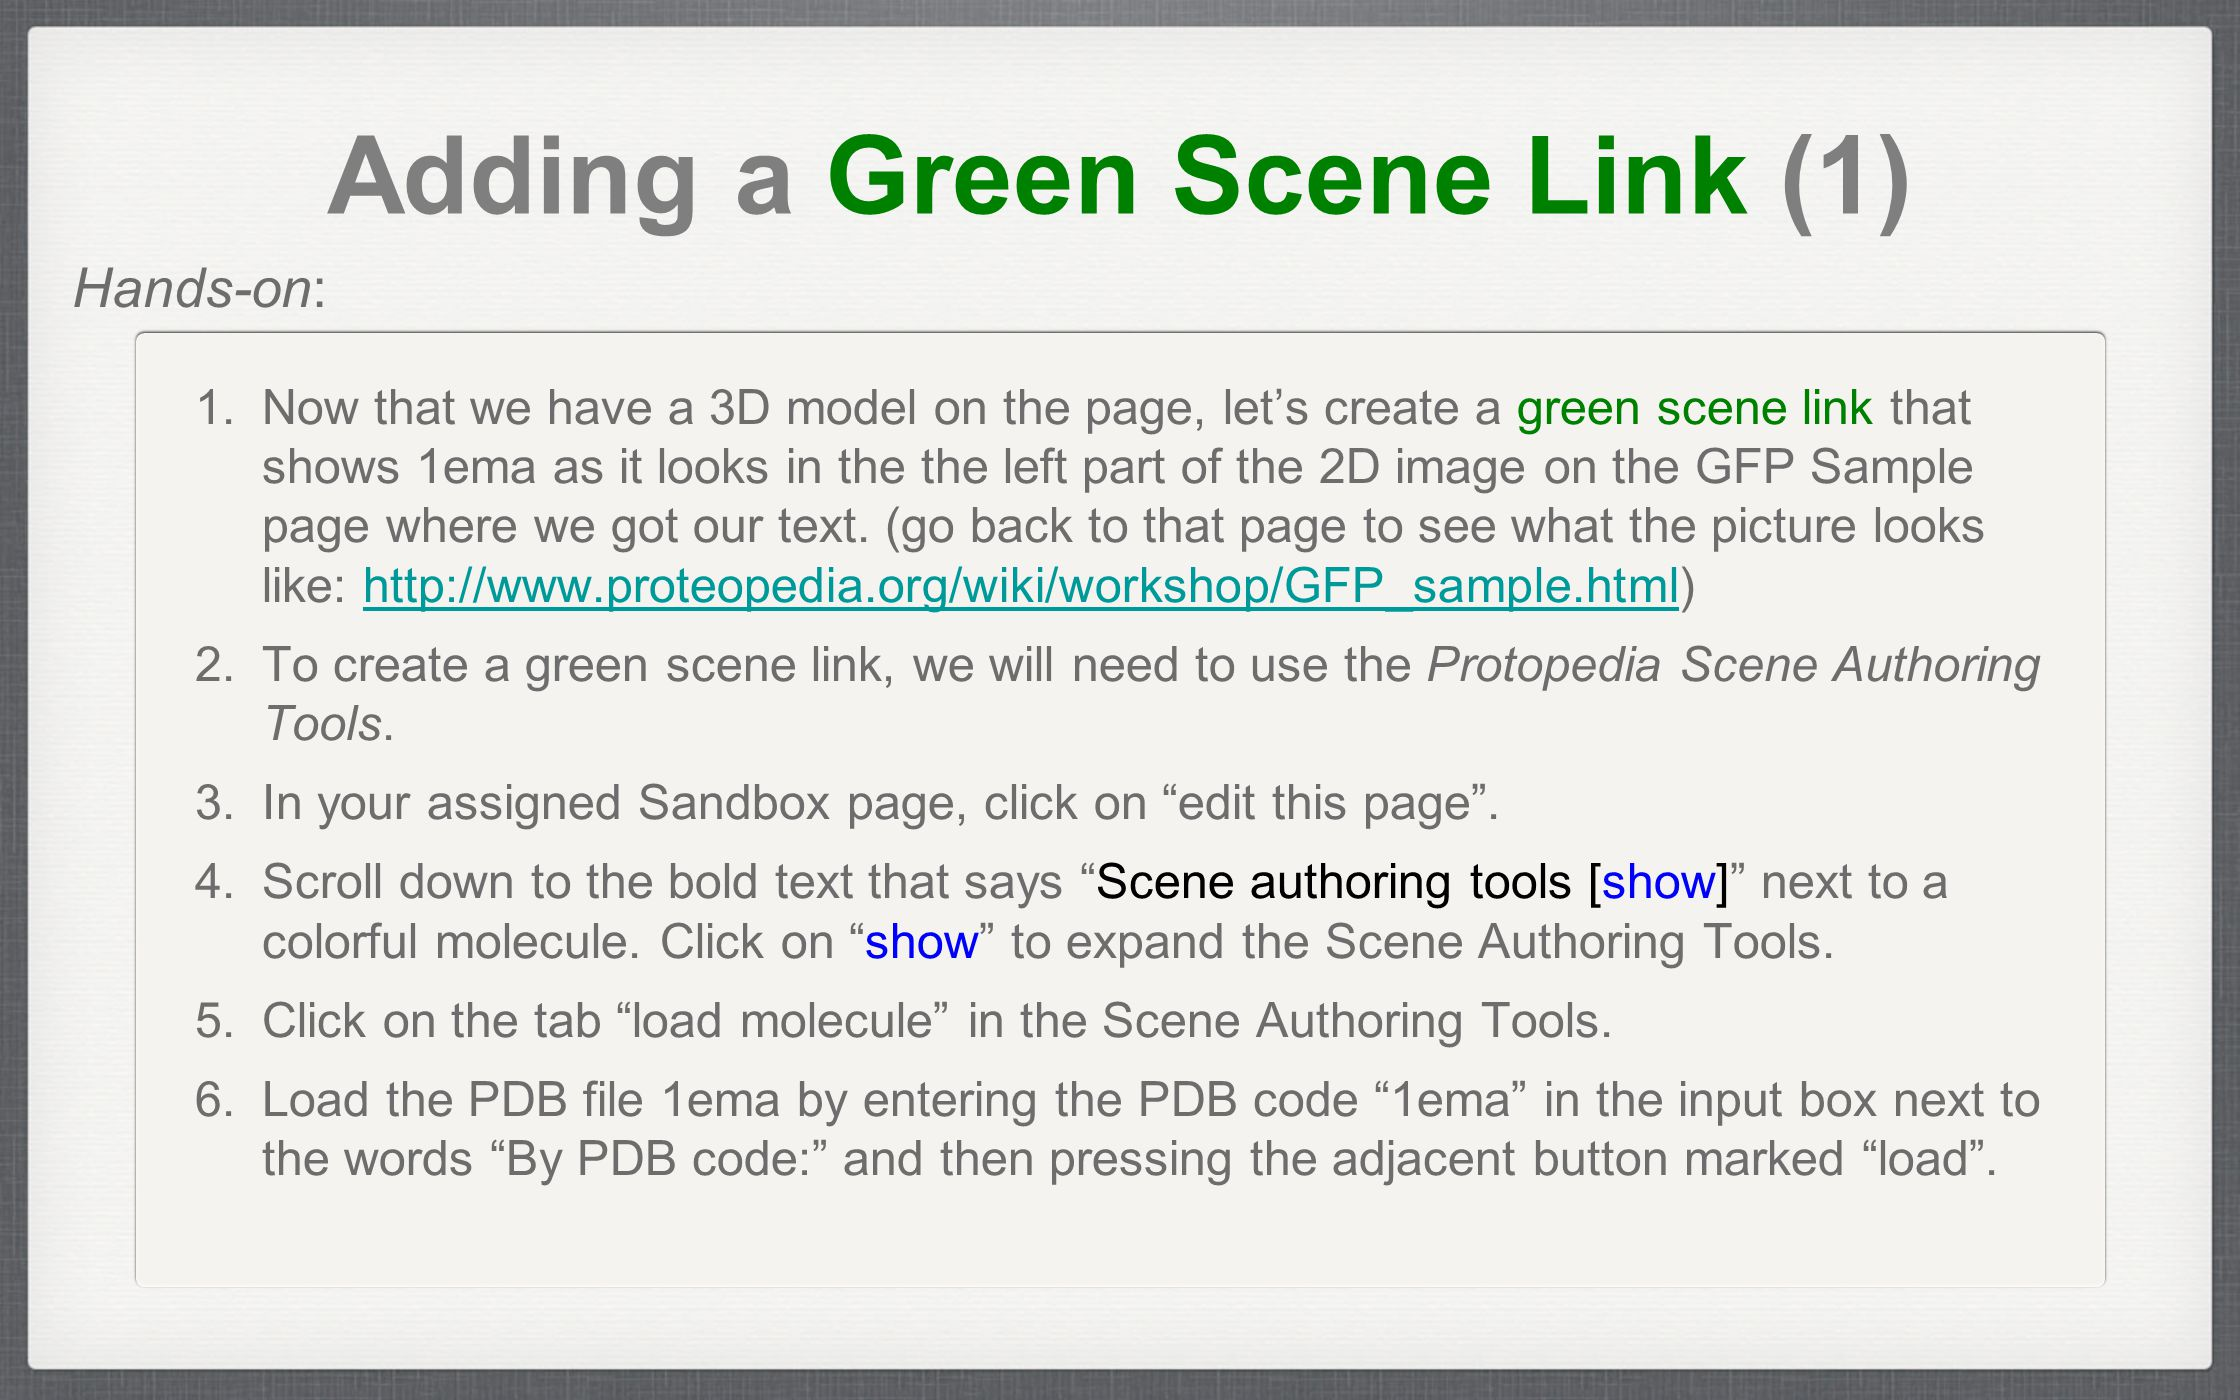 Adding a Green Scene Link (1) 1. Now that we have a 3D model on the page, let's create a green scene link that shows 1ema as it looks in the the left